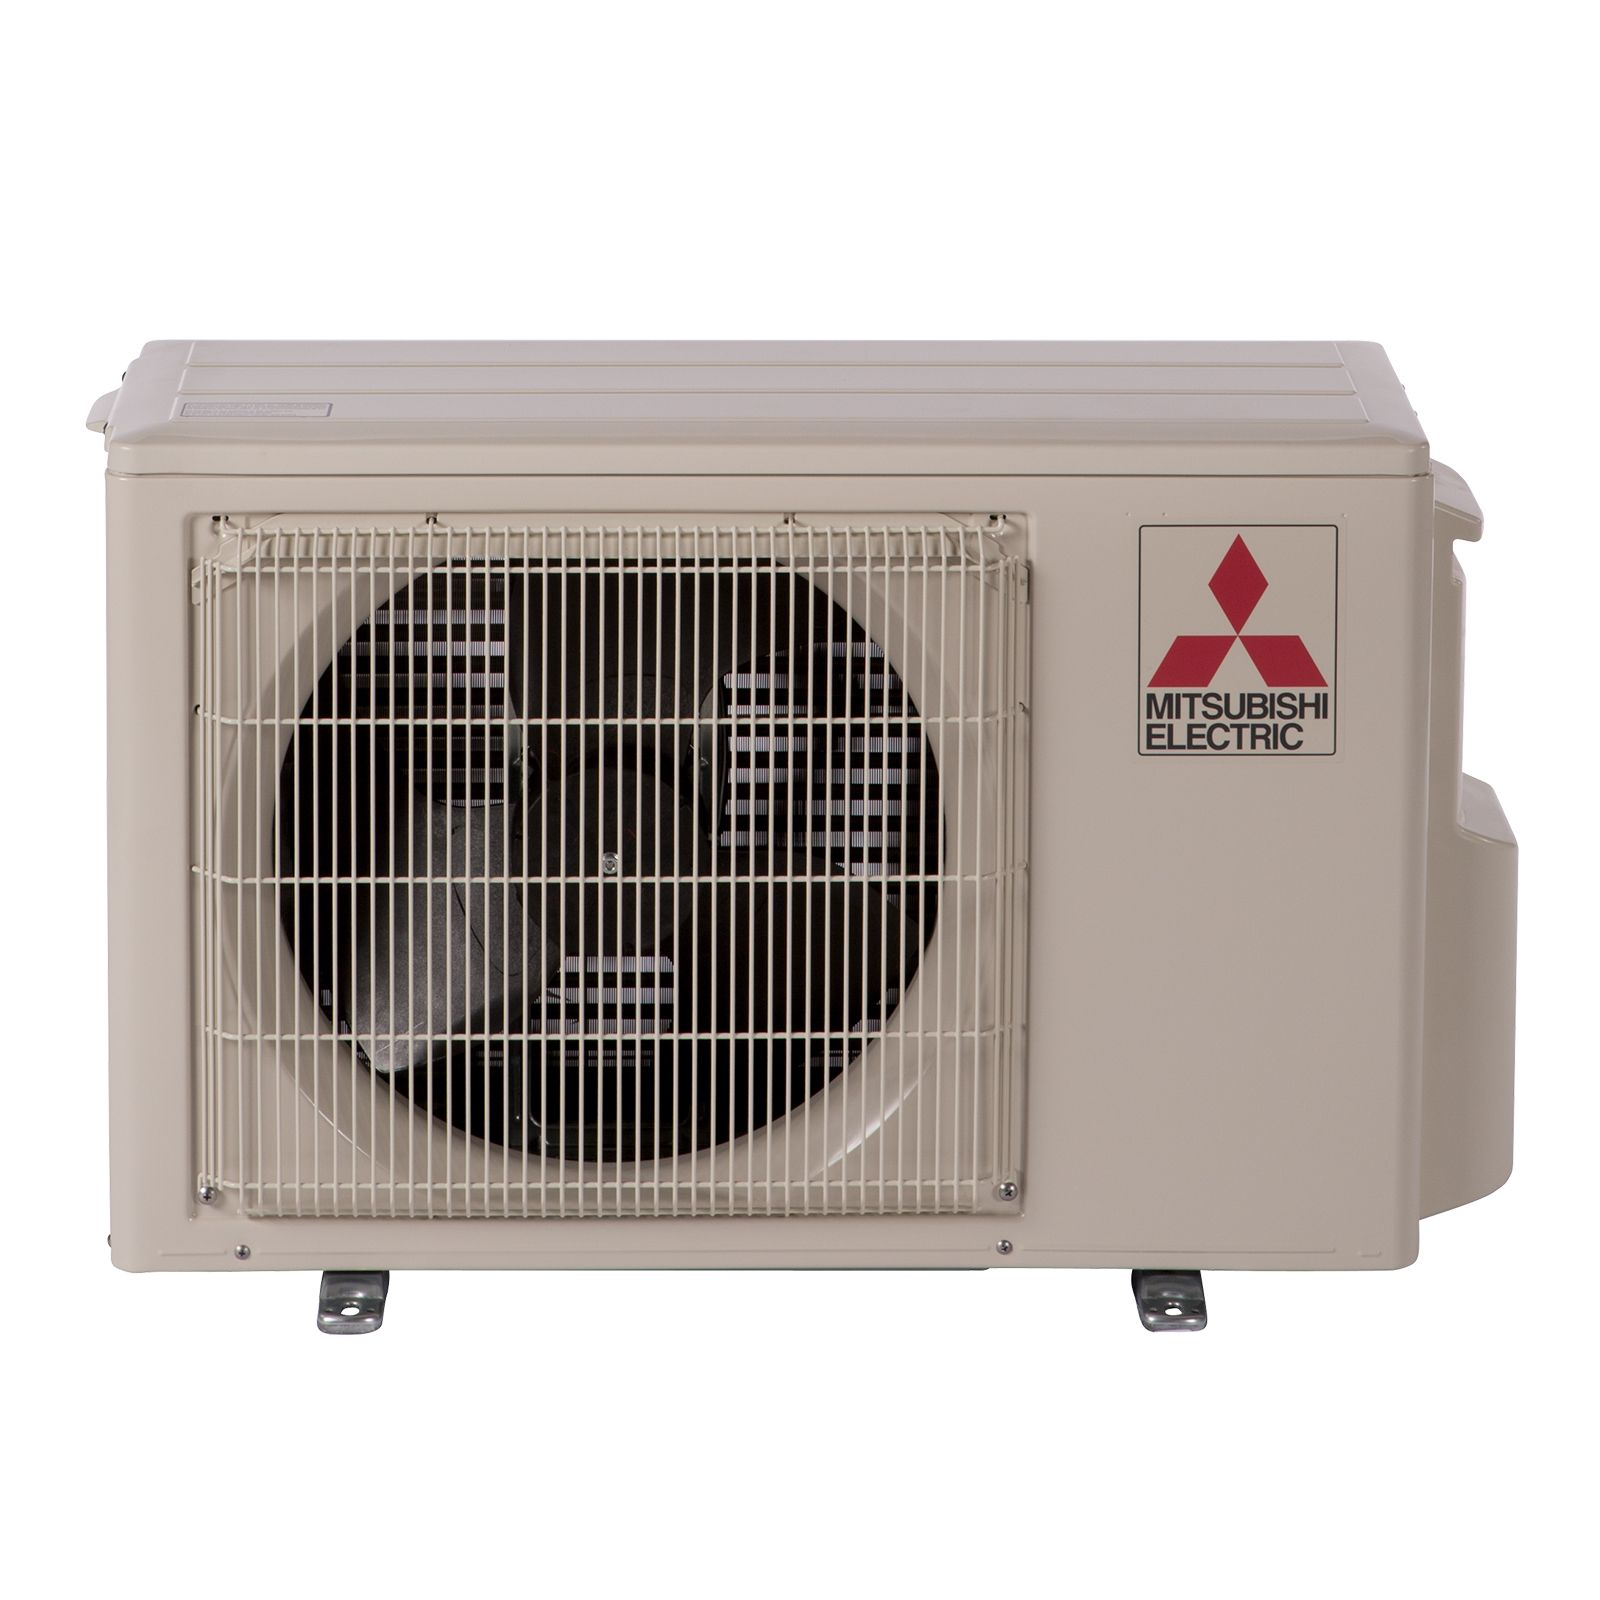 sez ac duct prod electric conditioner mitsubishi ceiling product air split wall residential